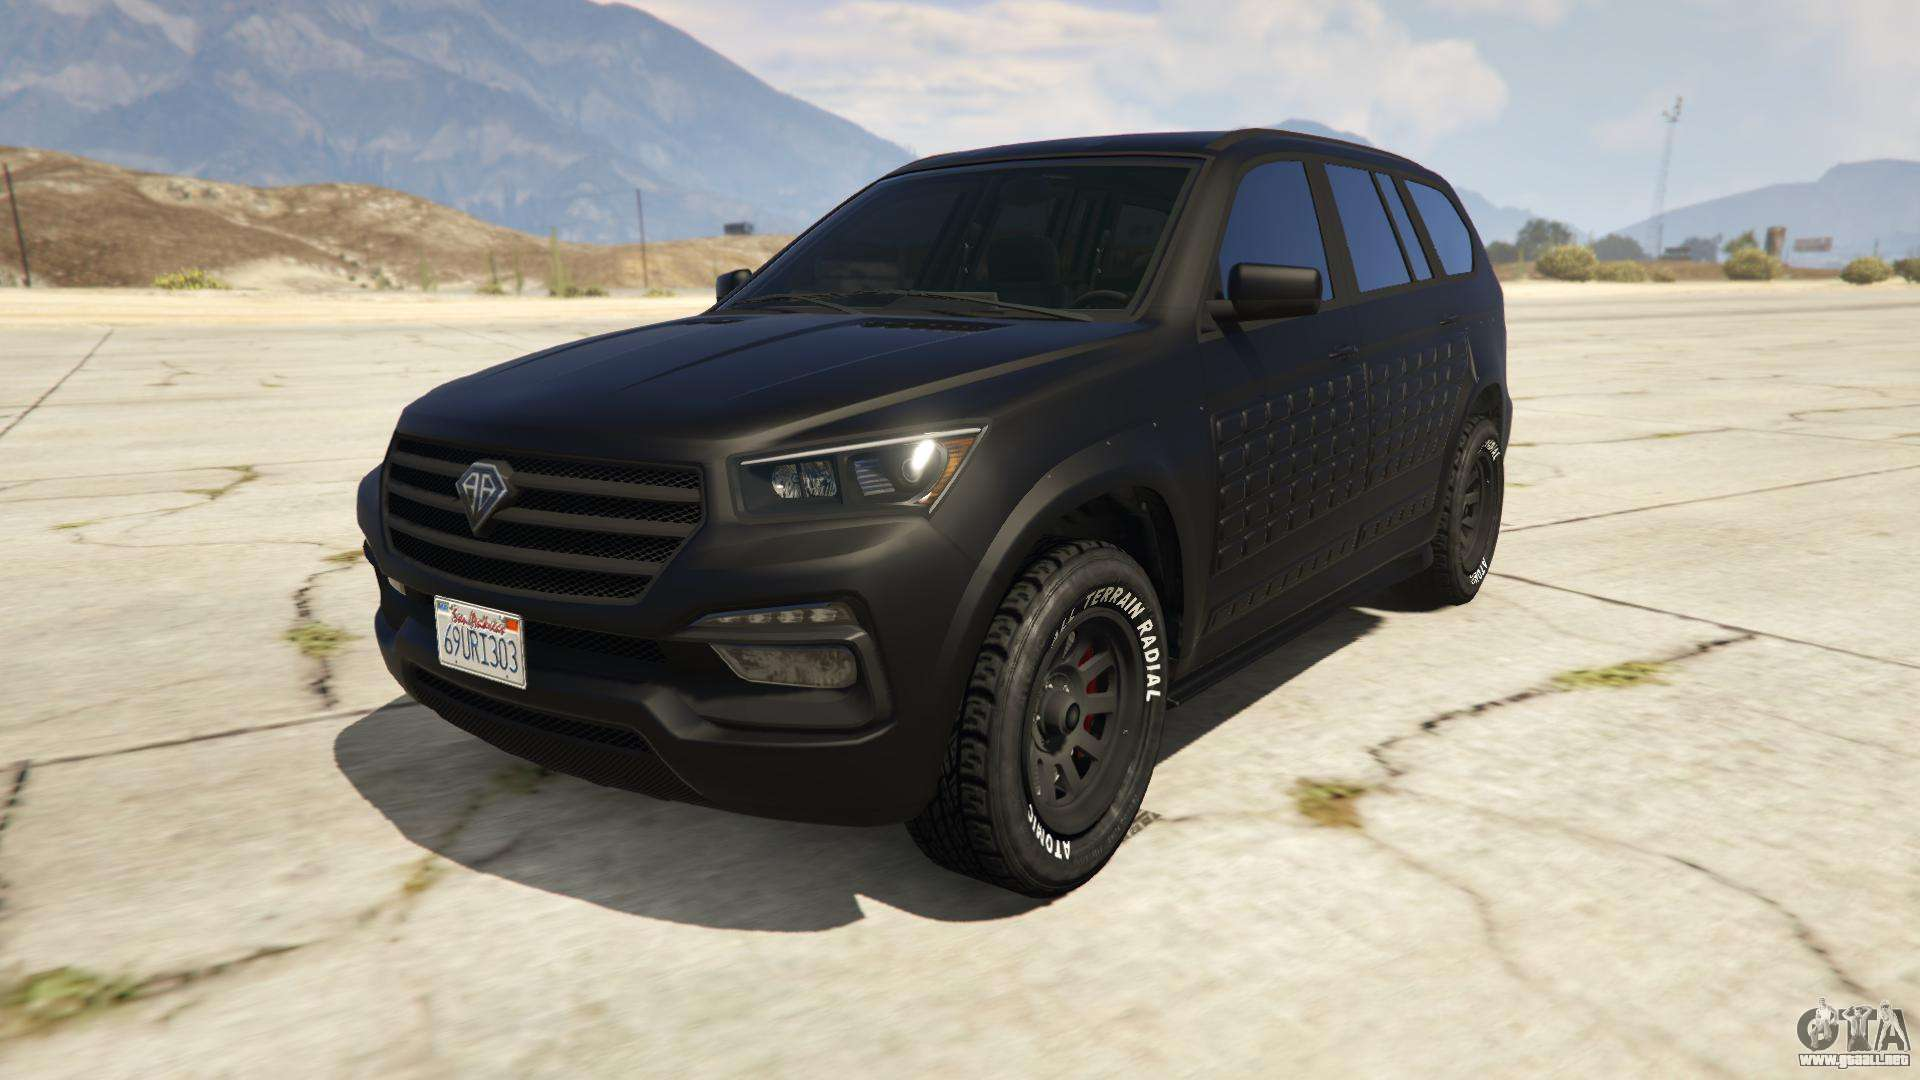 Benefactor XLS (Armored) de GTA Online - vista frontal